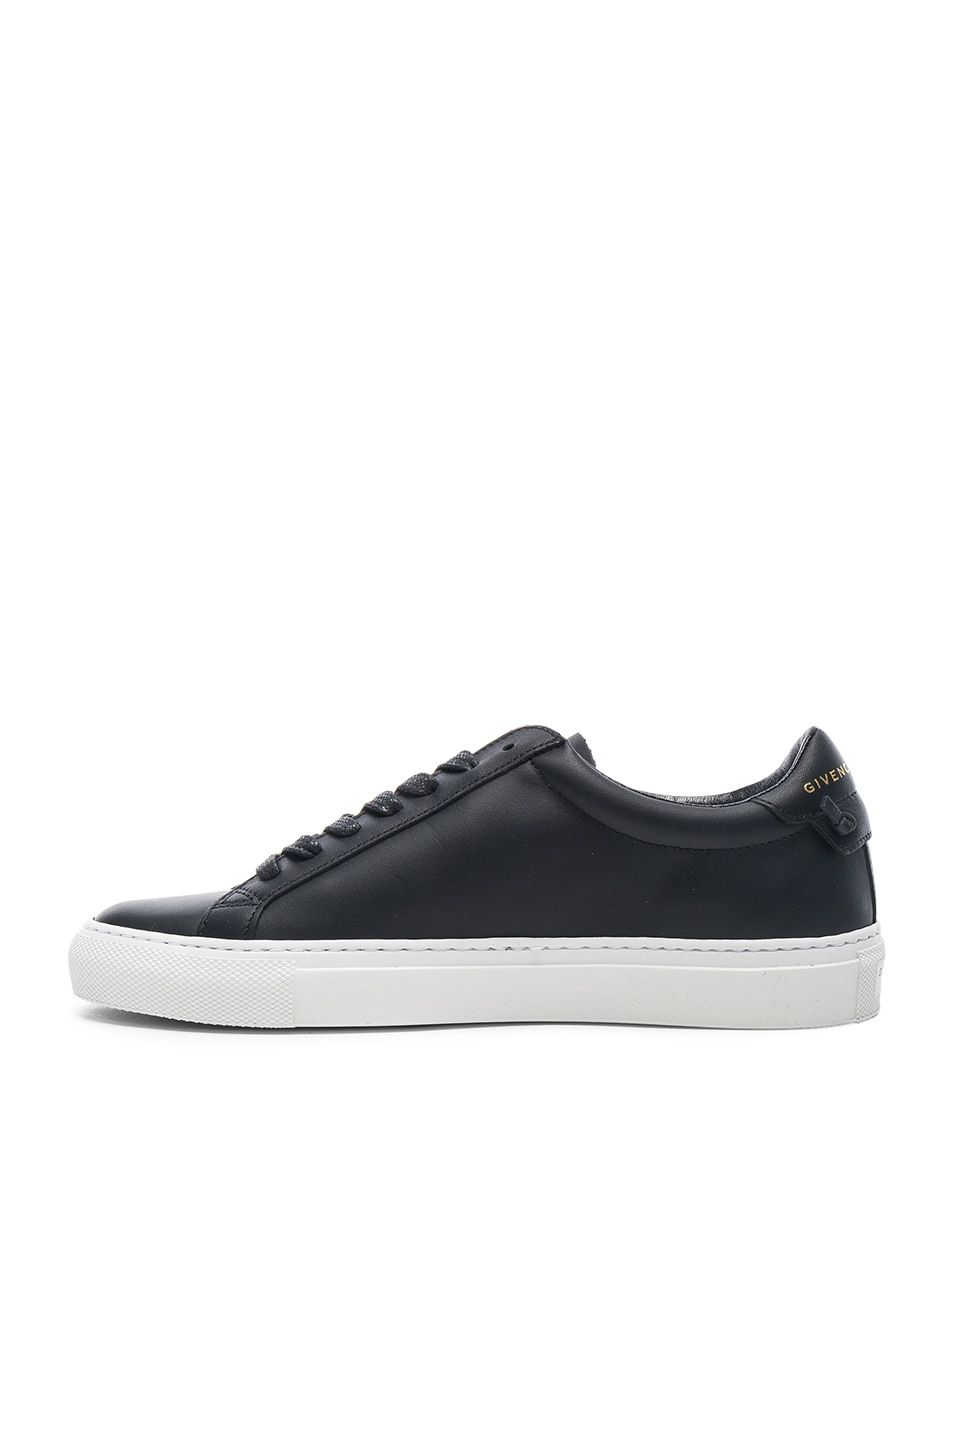 Image 5 of Givenchy Knots Leather Low Sneakers in Black